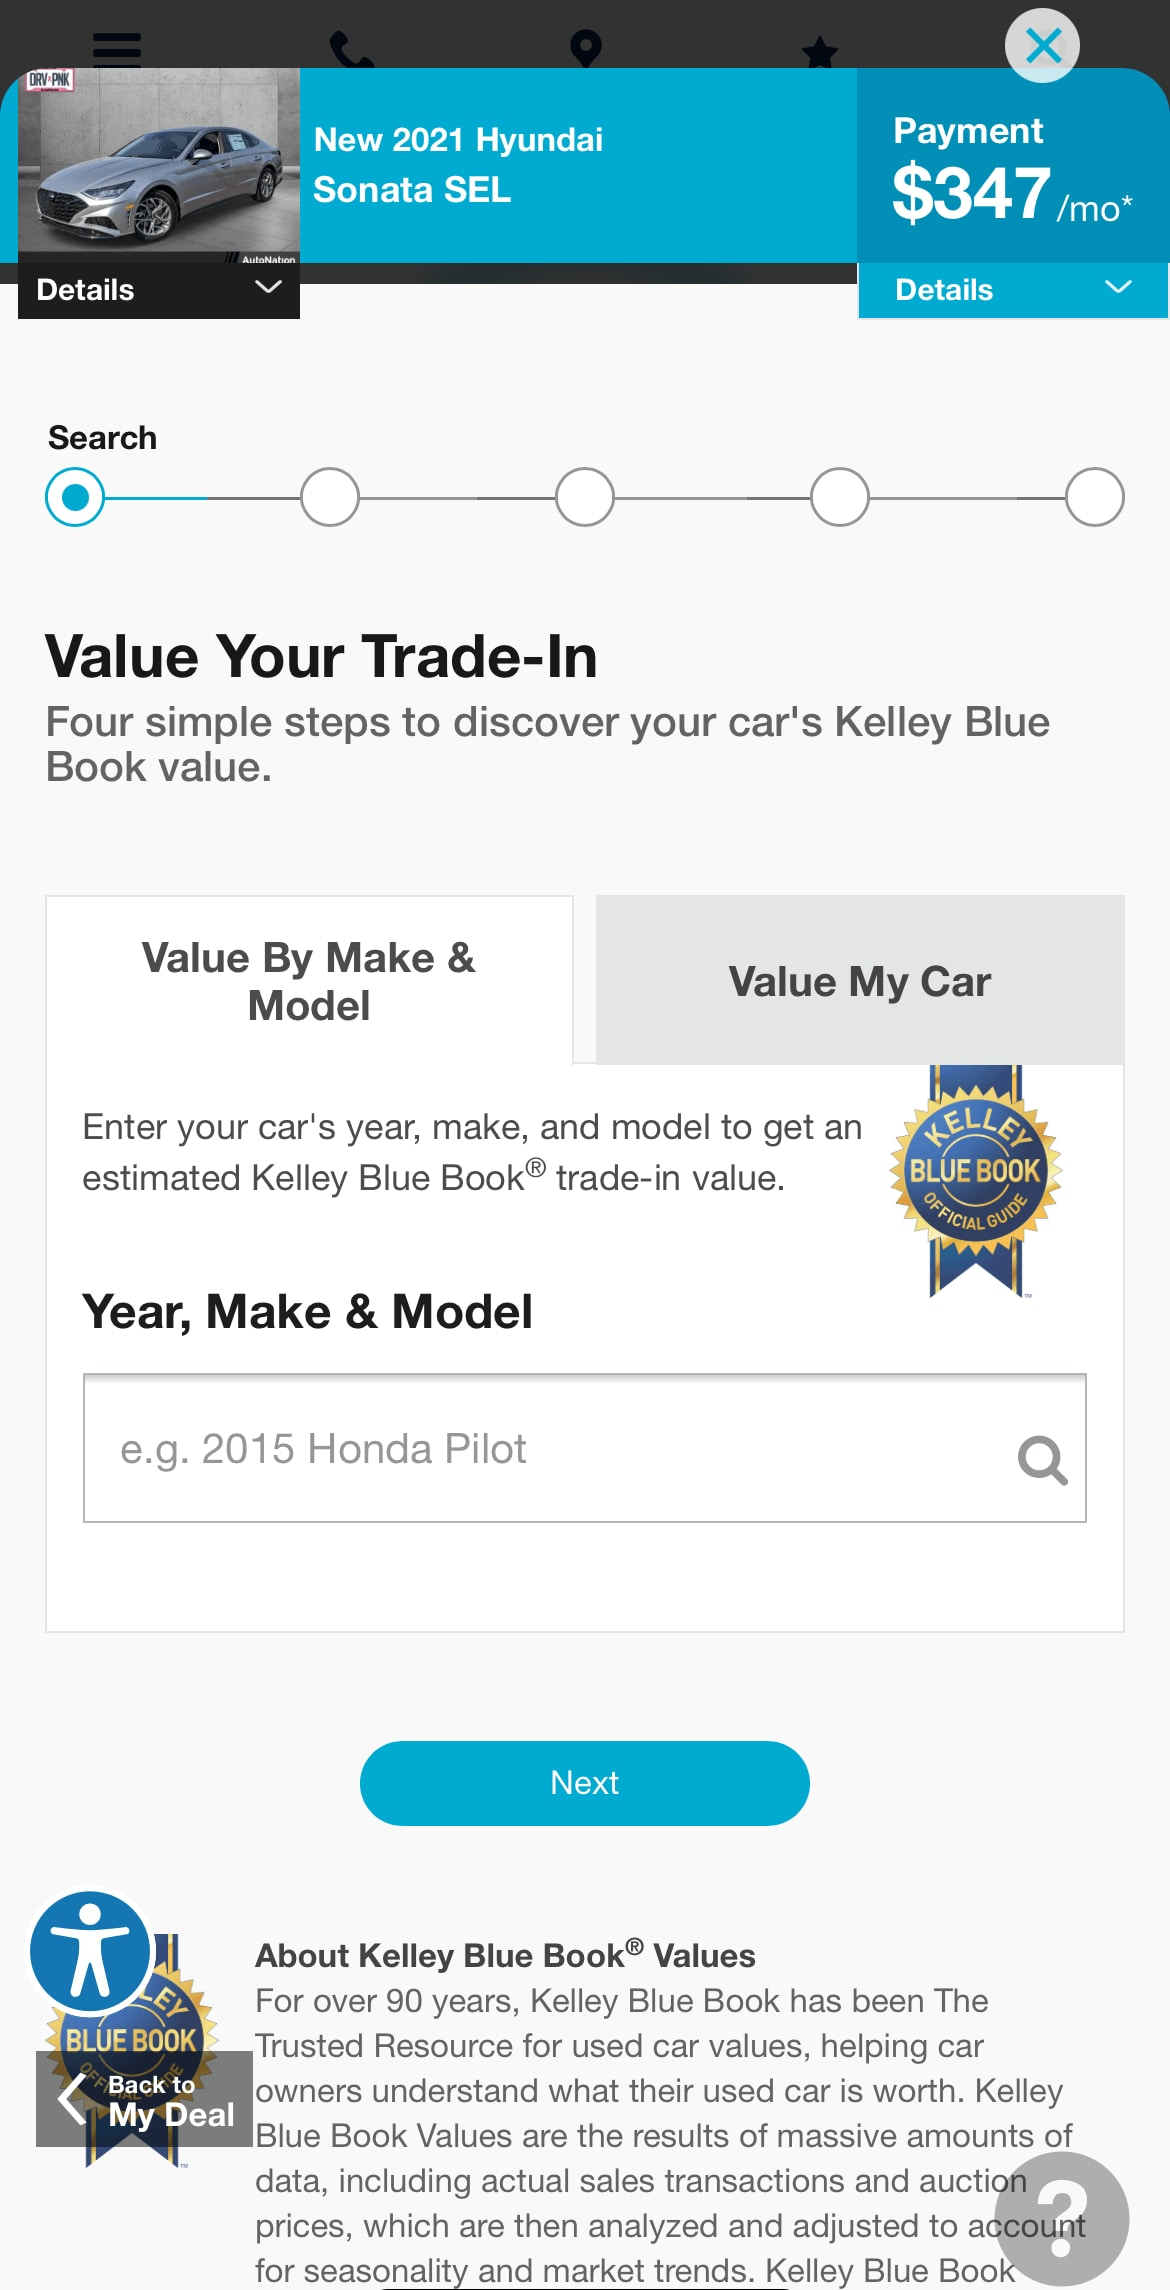 AutoNation Express value your trade-in screen on a mobile device